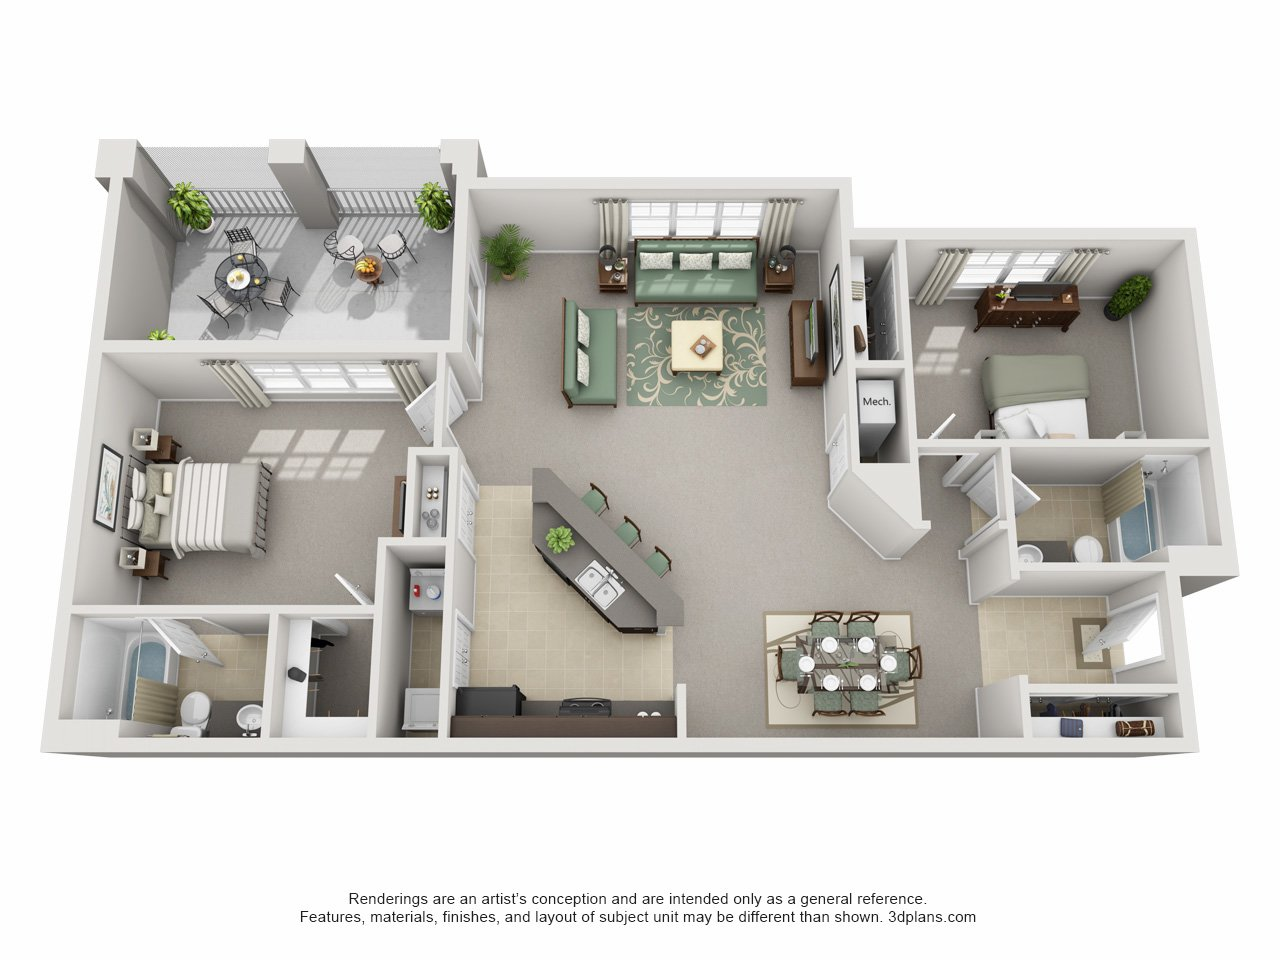 One bedroom apartments in ta fl 1 bedroom houses for for Ta home decor